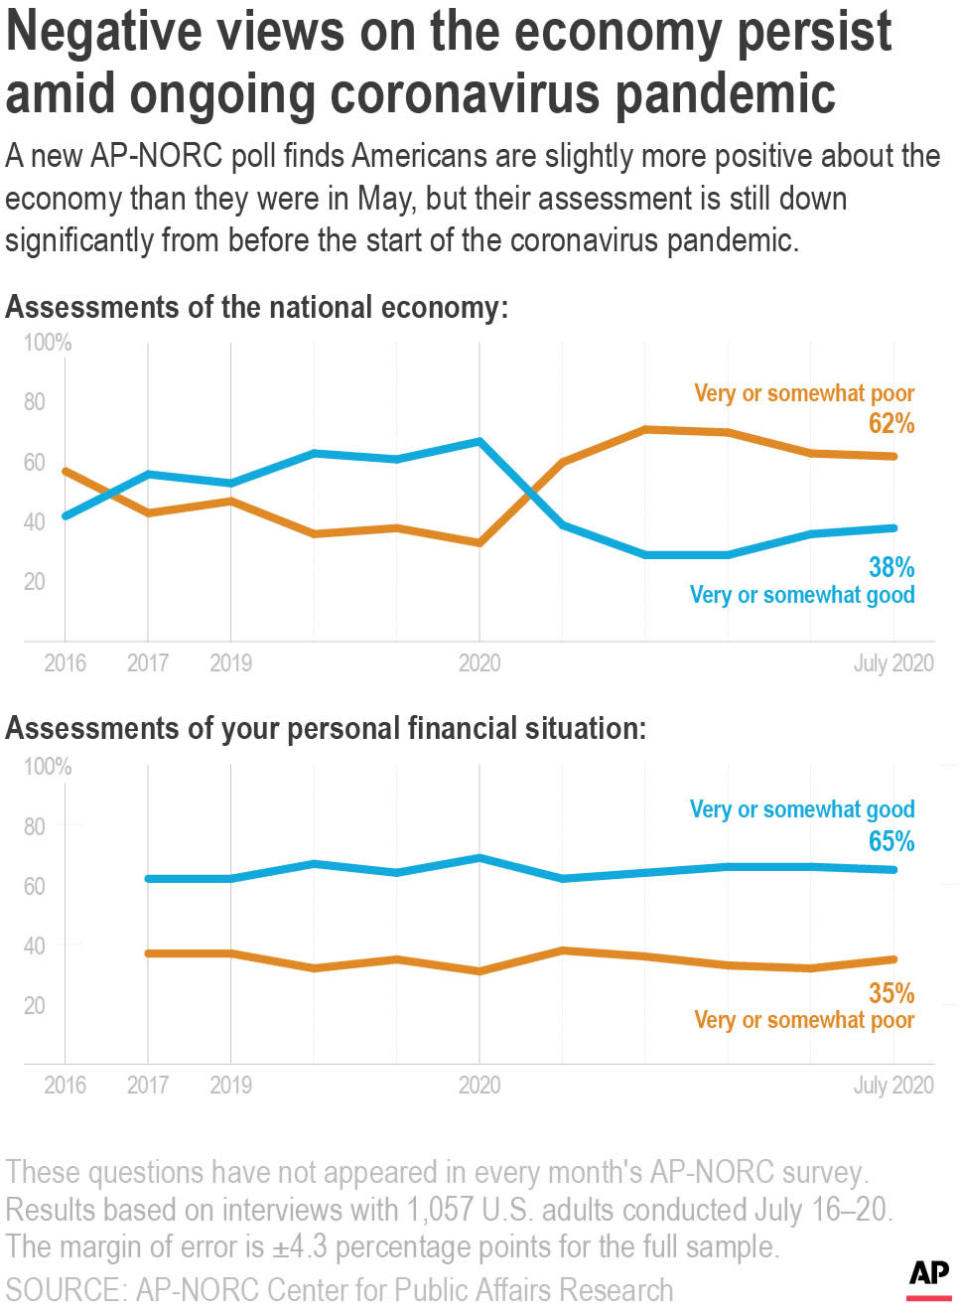 A new AP-NORC poll finds Americans are slightly more positive about the economy than they were in May, but their assessment is still down significantly from before the start of the coronavirus pandemic.;